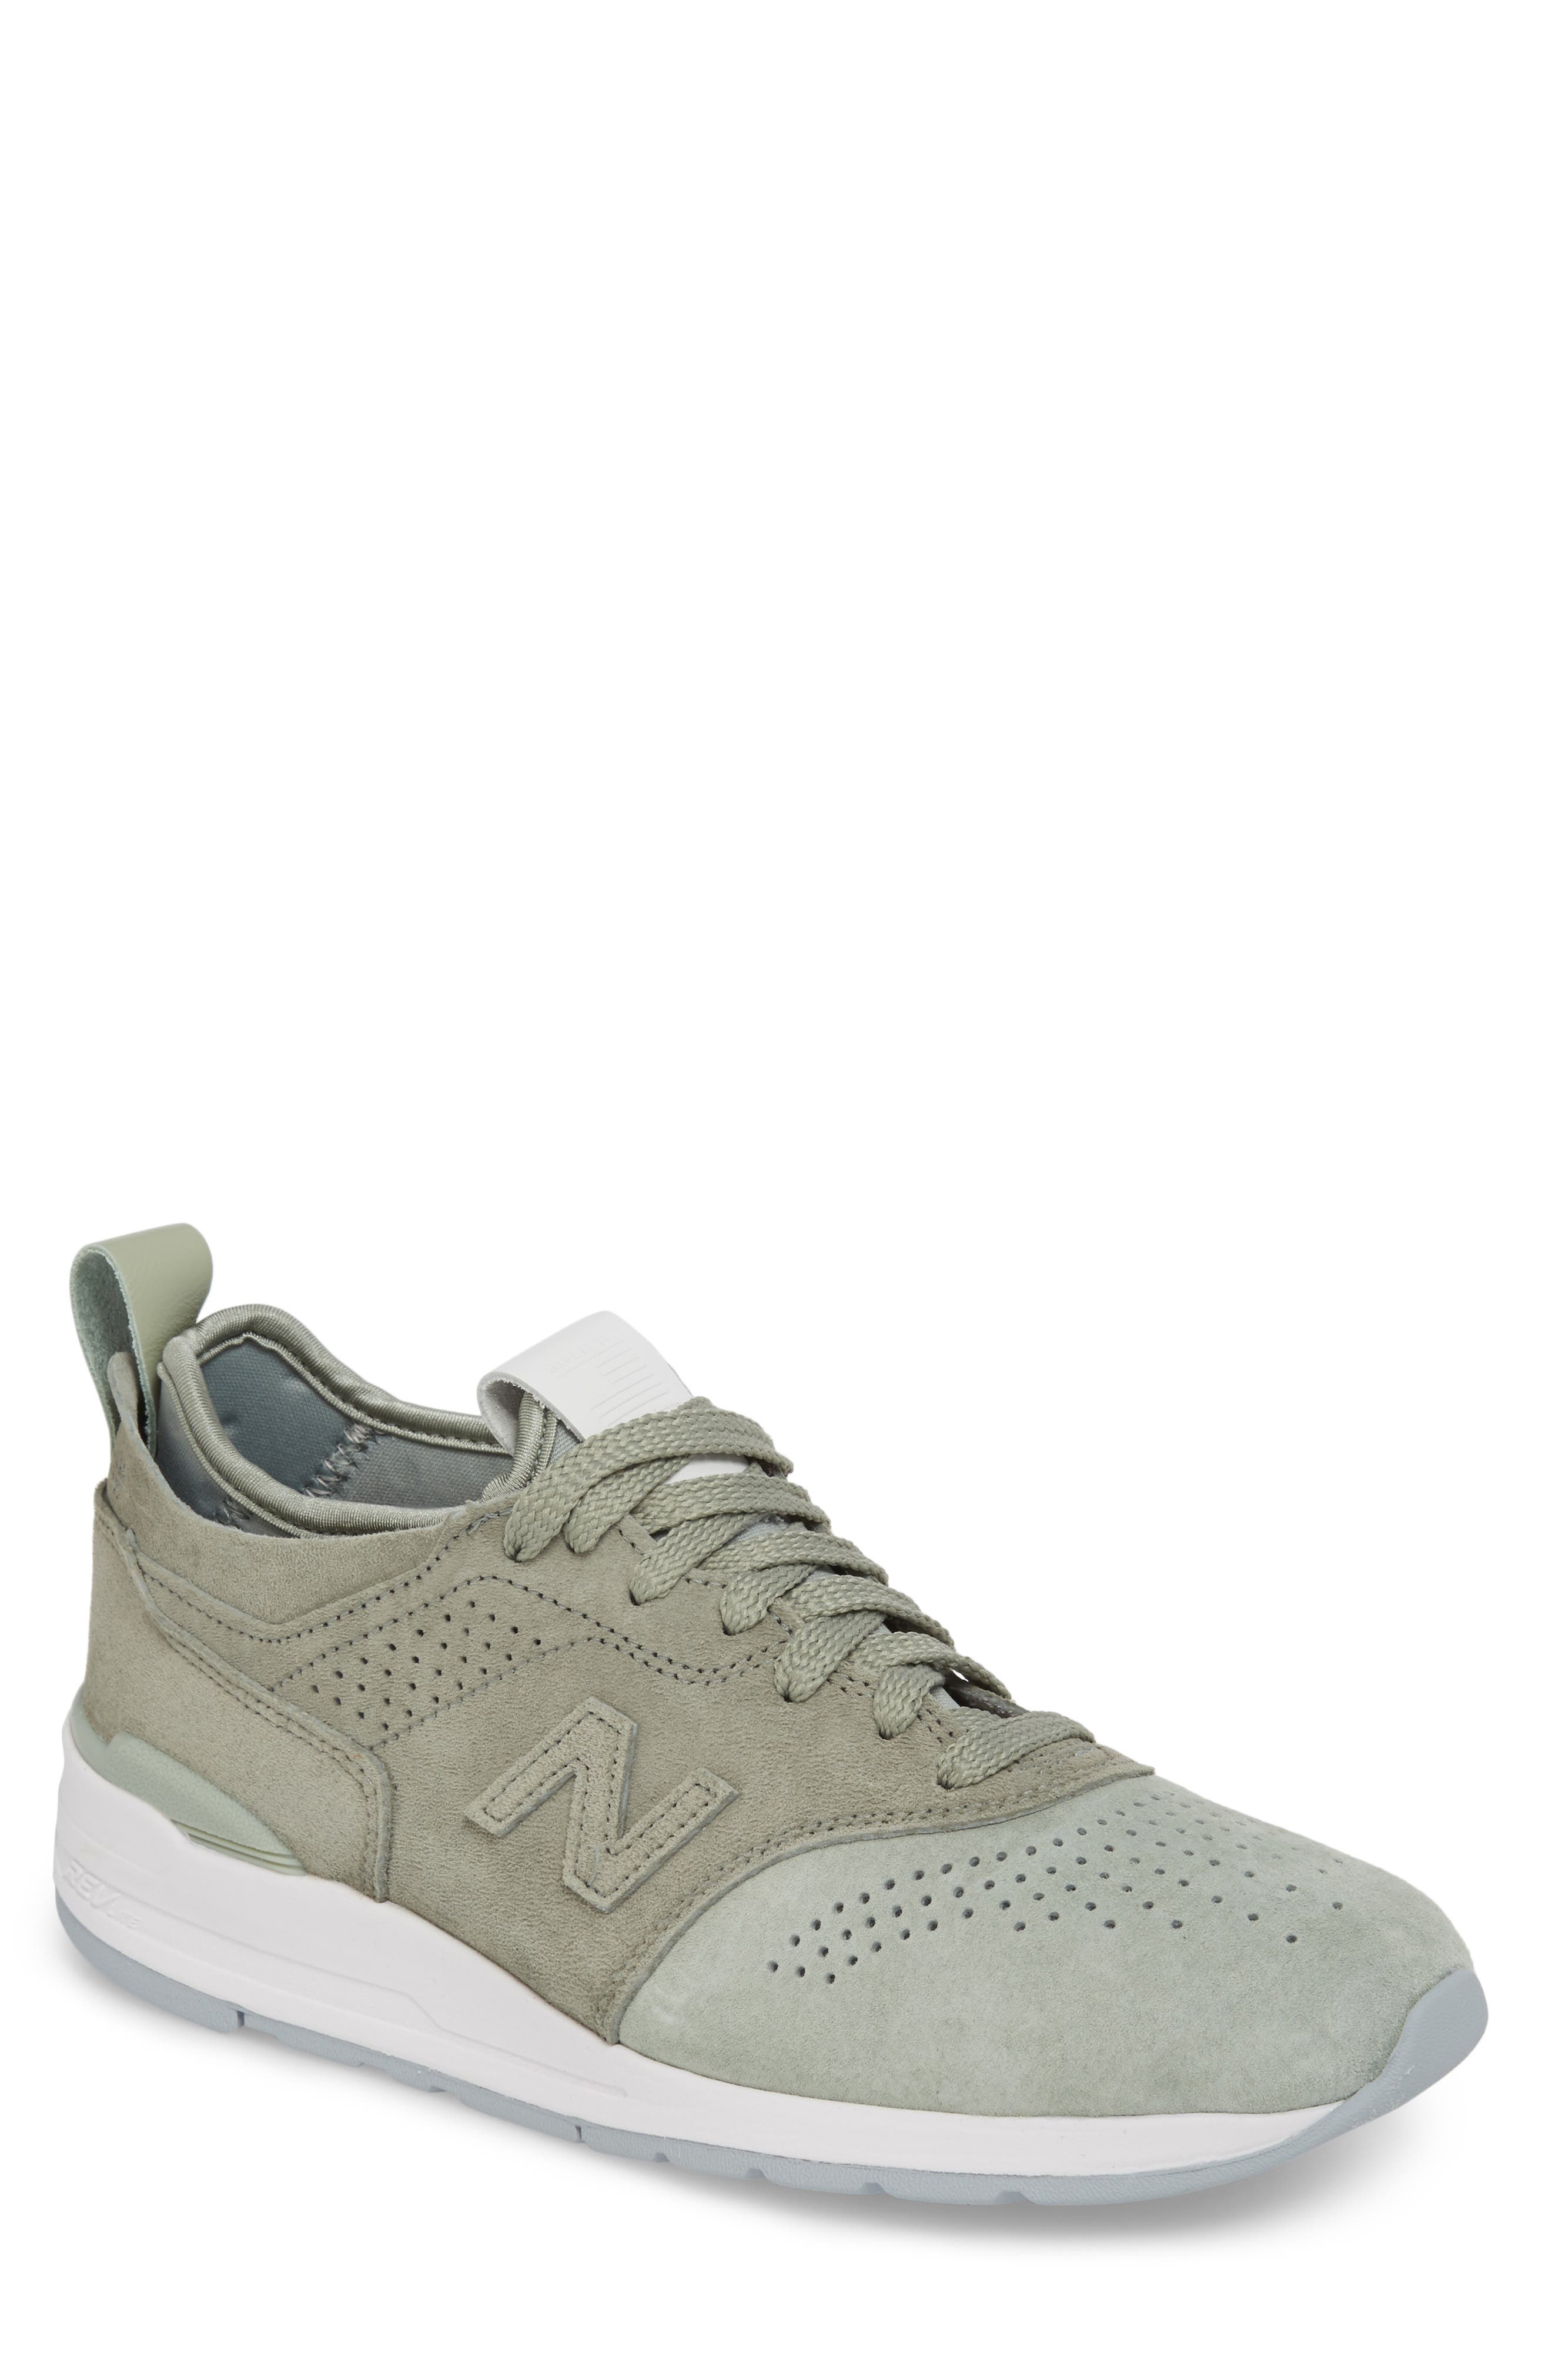 997R Perforated Sneaker,                             Main thumbnail 1, color,                             Silver Mint